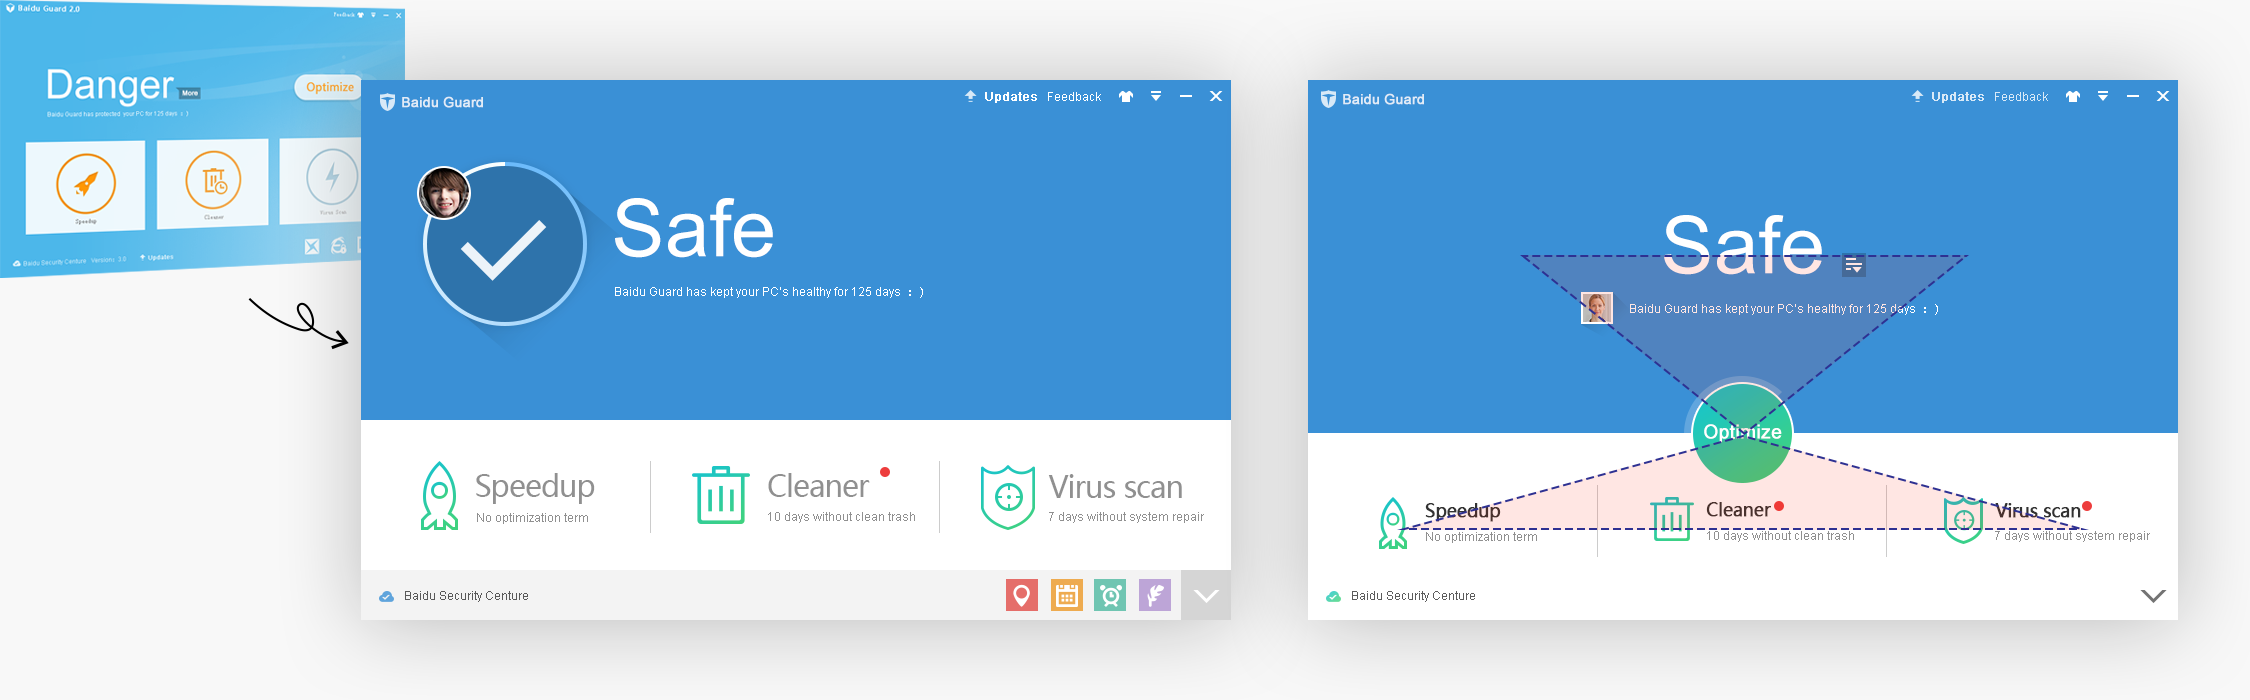 home screen layouts